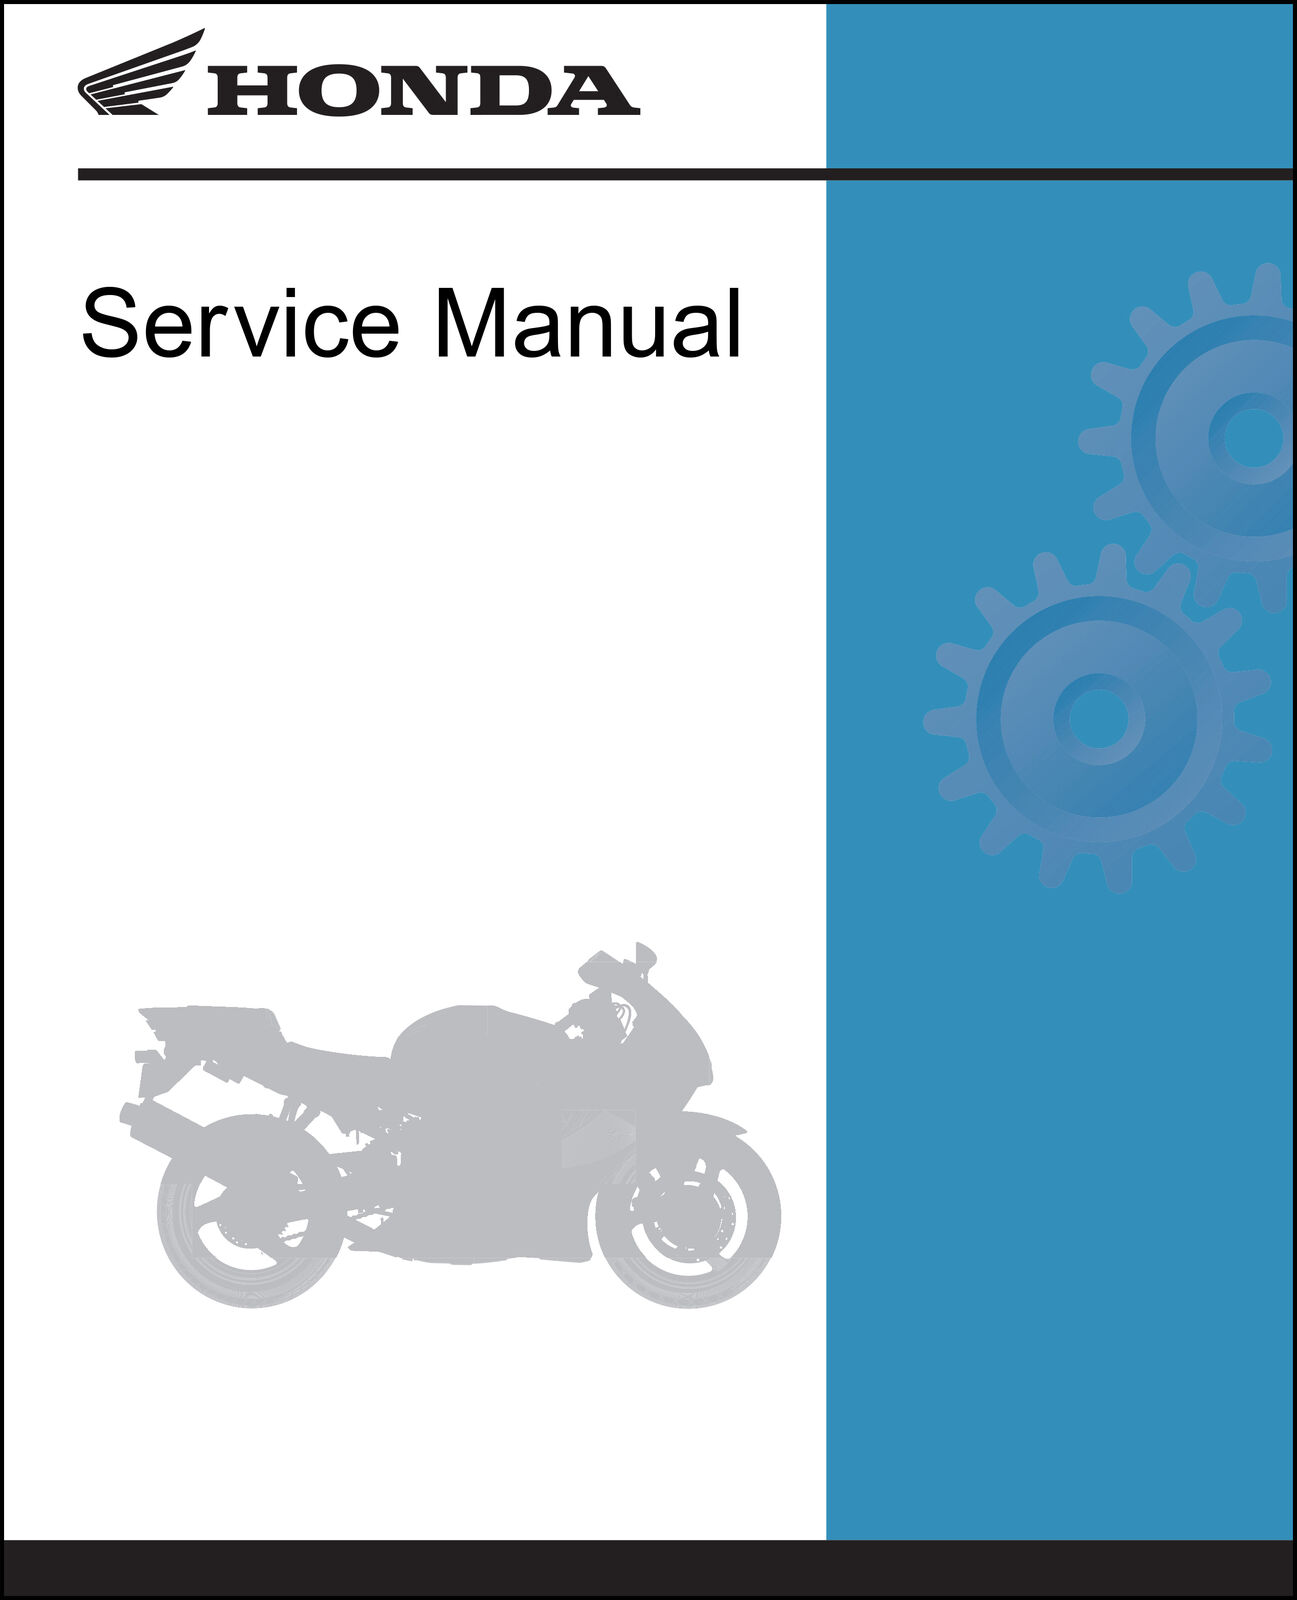 Honda 1982-83 FT500 Ascot Shop Manual Service Repair 82 1983 83 1 of 1FREE  Shipping ...